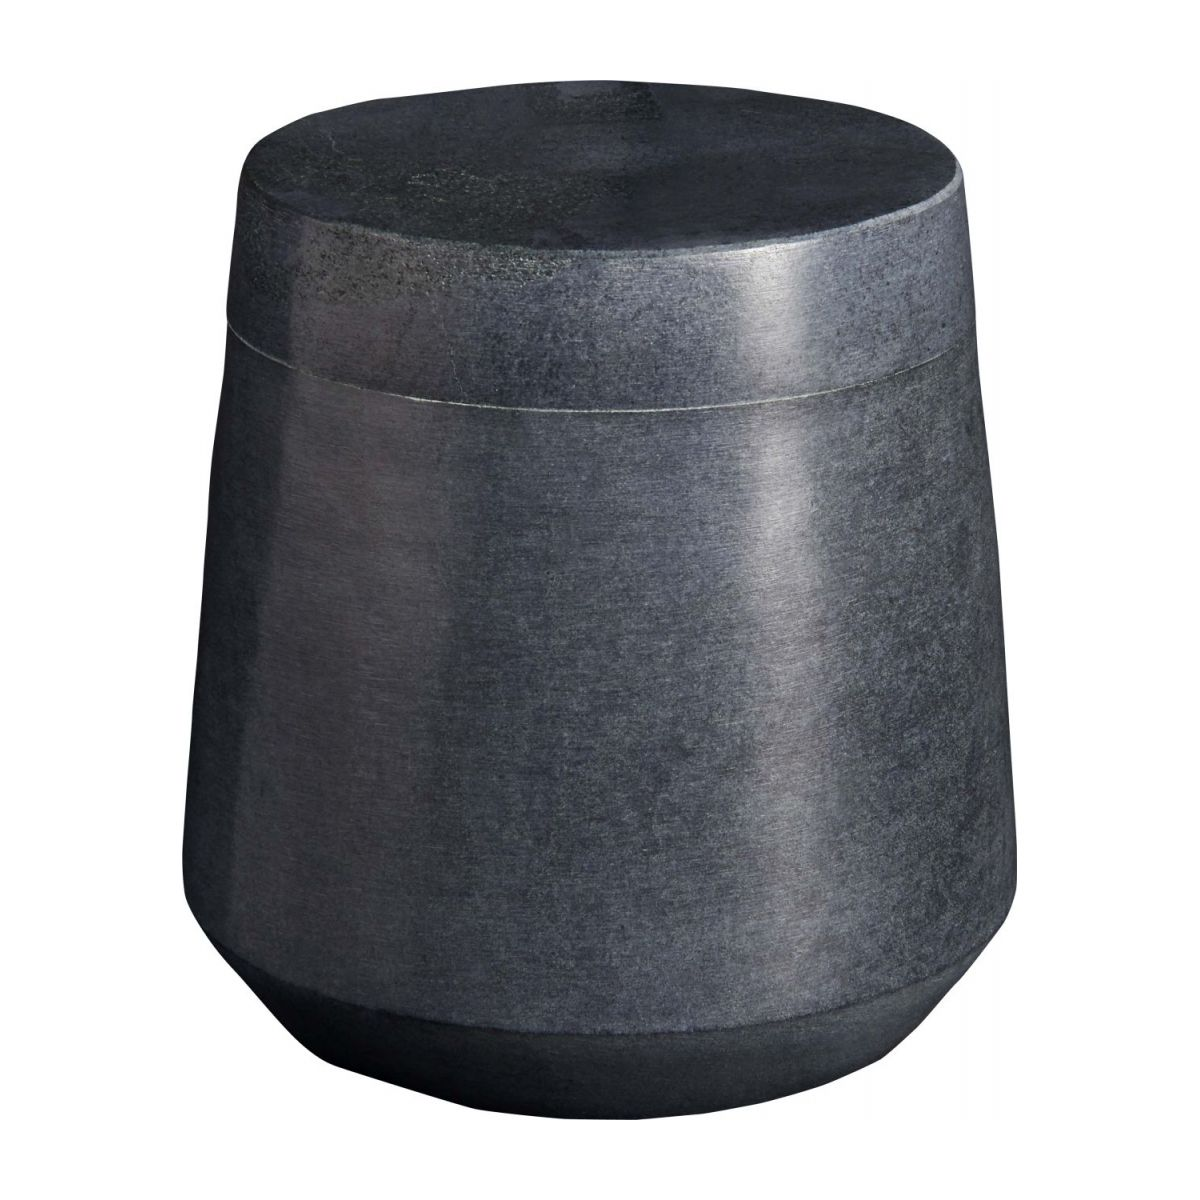 Grey soapstone coton box n°1